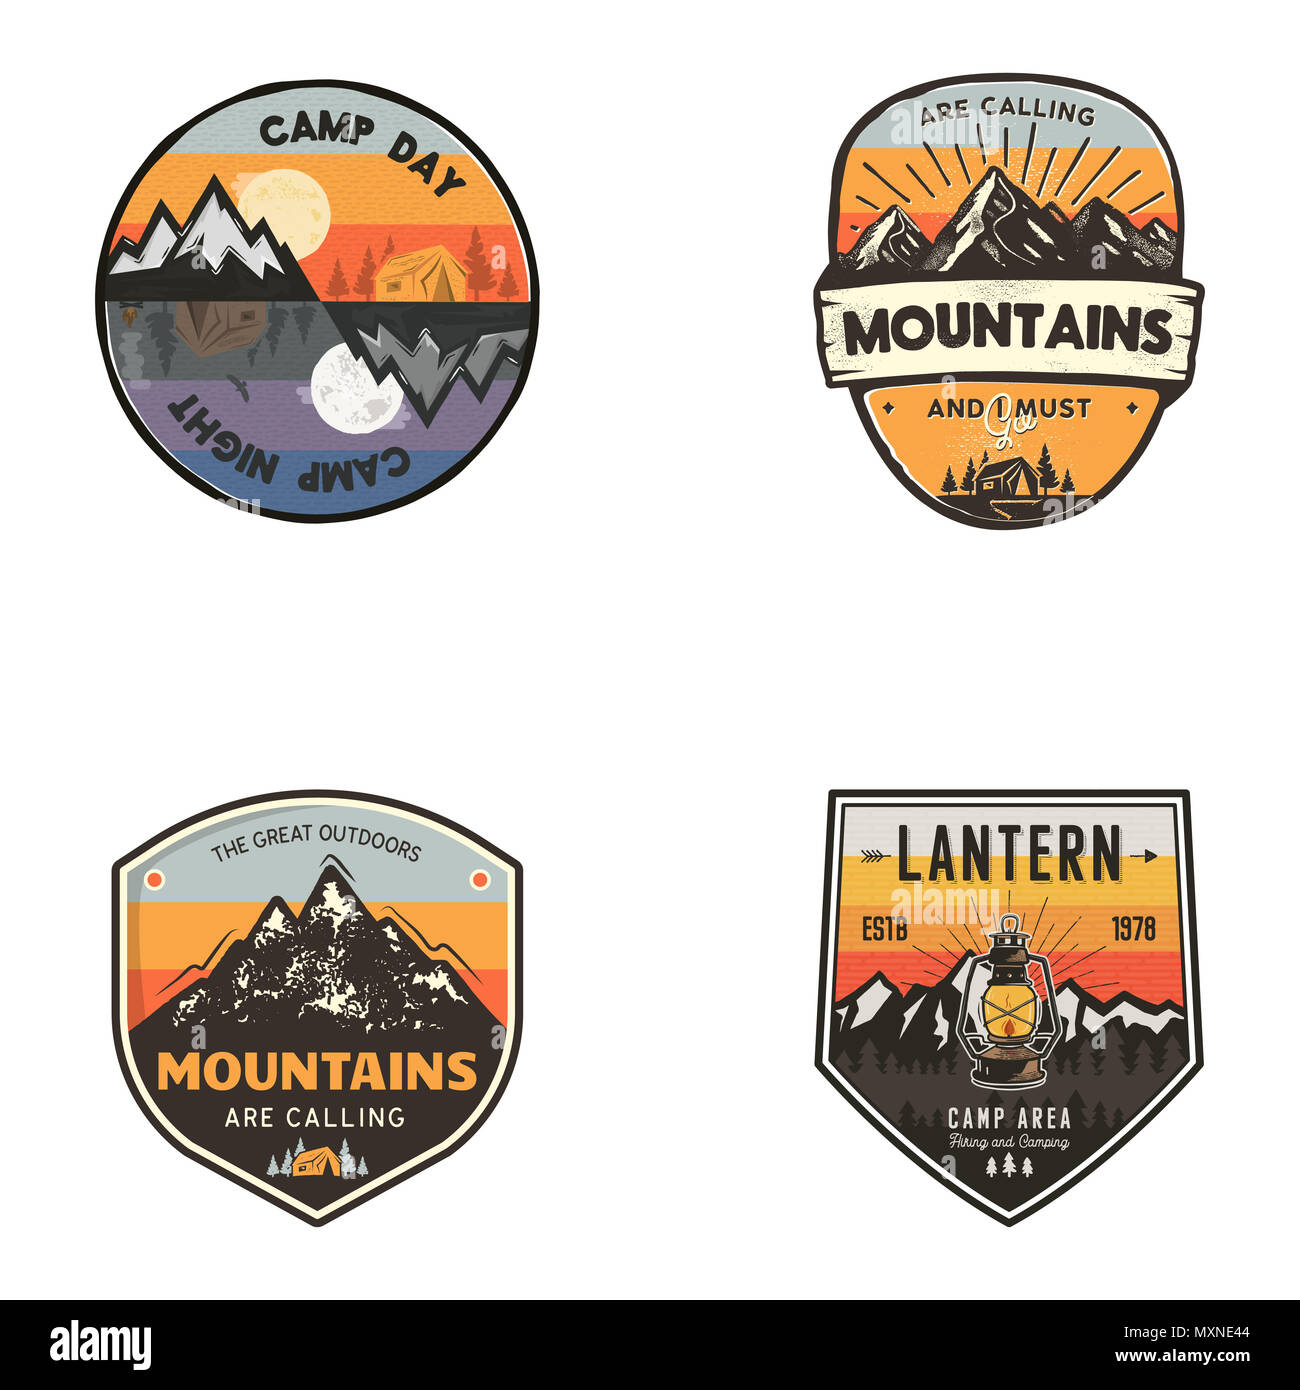 Set of vintage hand drawn travel logos. Hiking labels concepts. Mountain expedition badge designs. Travel logos, trekking logotypes collection. Stock retro patches isolated on white background - Stock Image